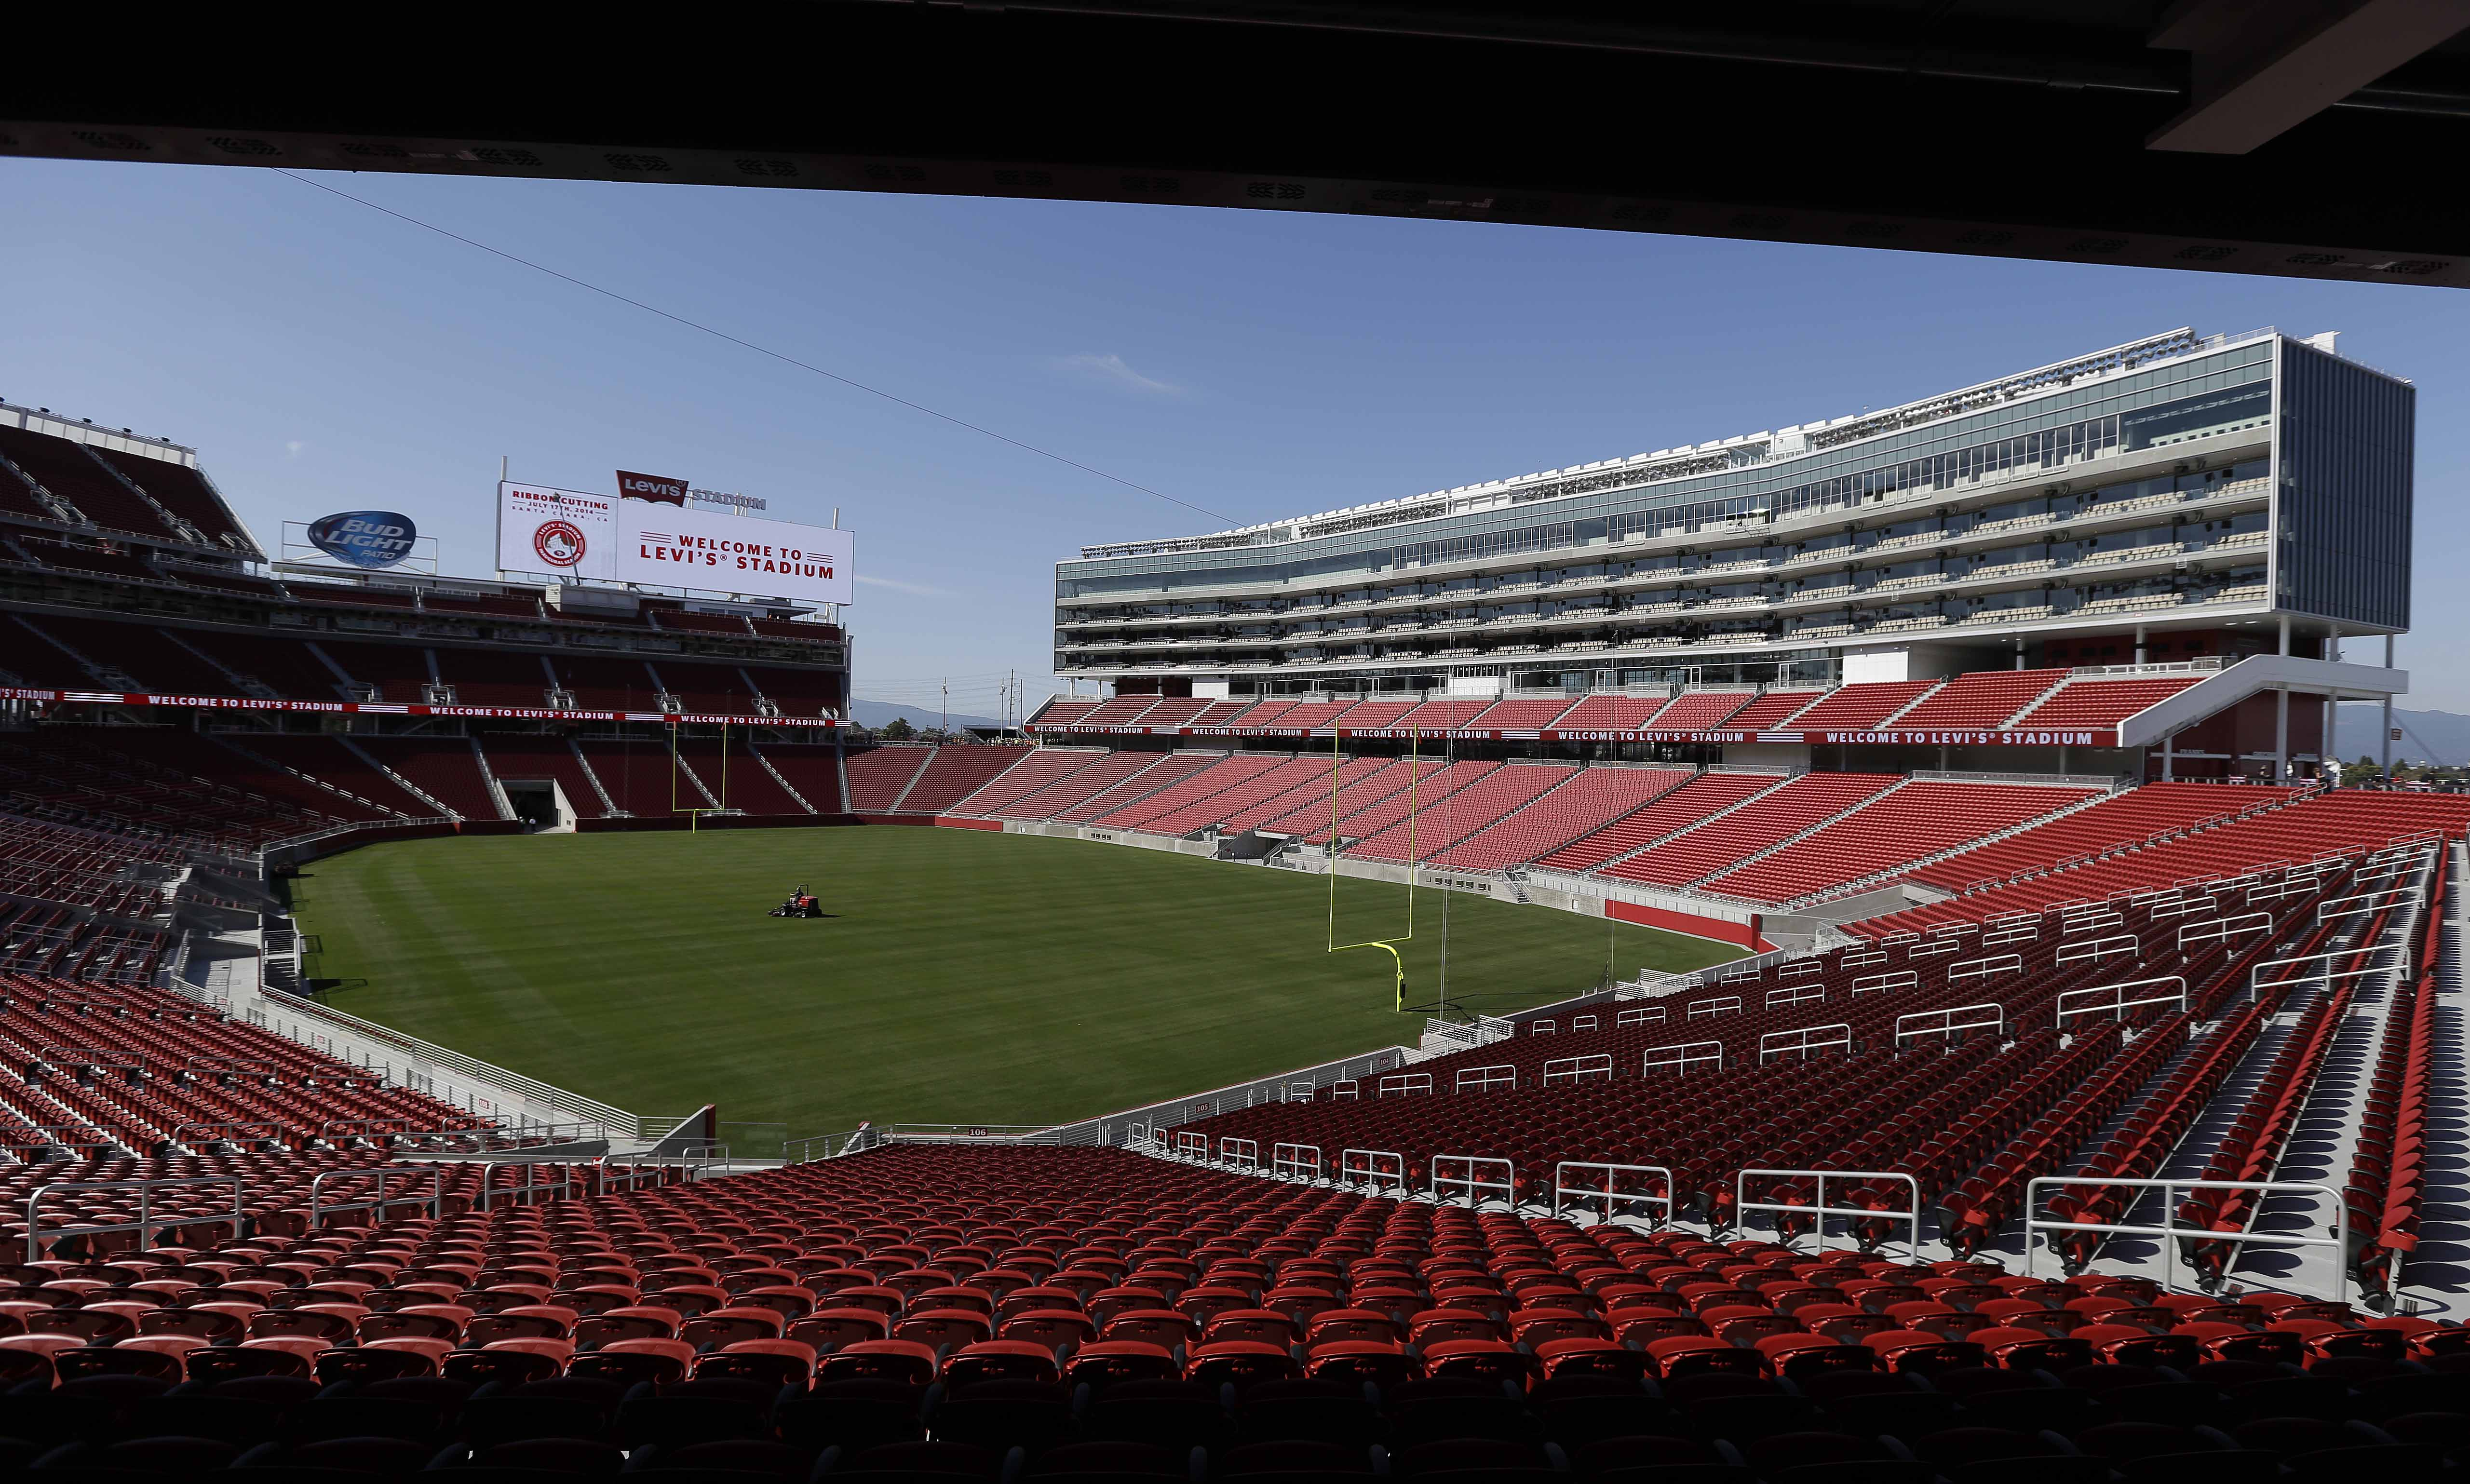 Report: 49ers to bid to host College Football Playoff title game